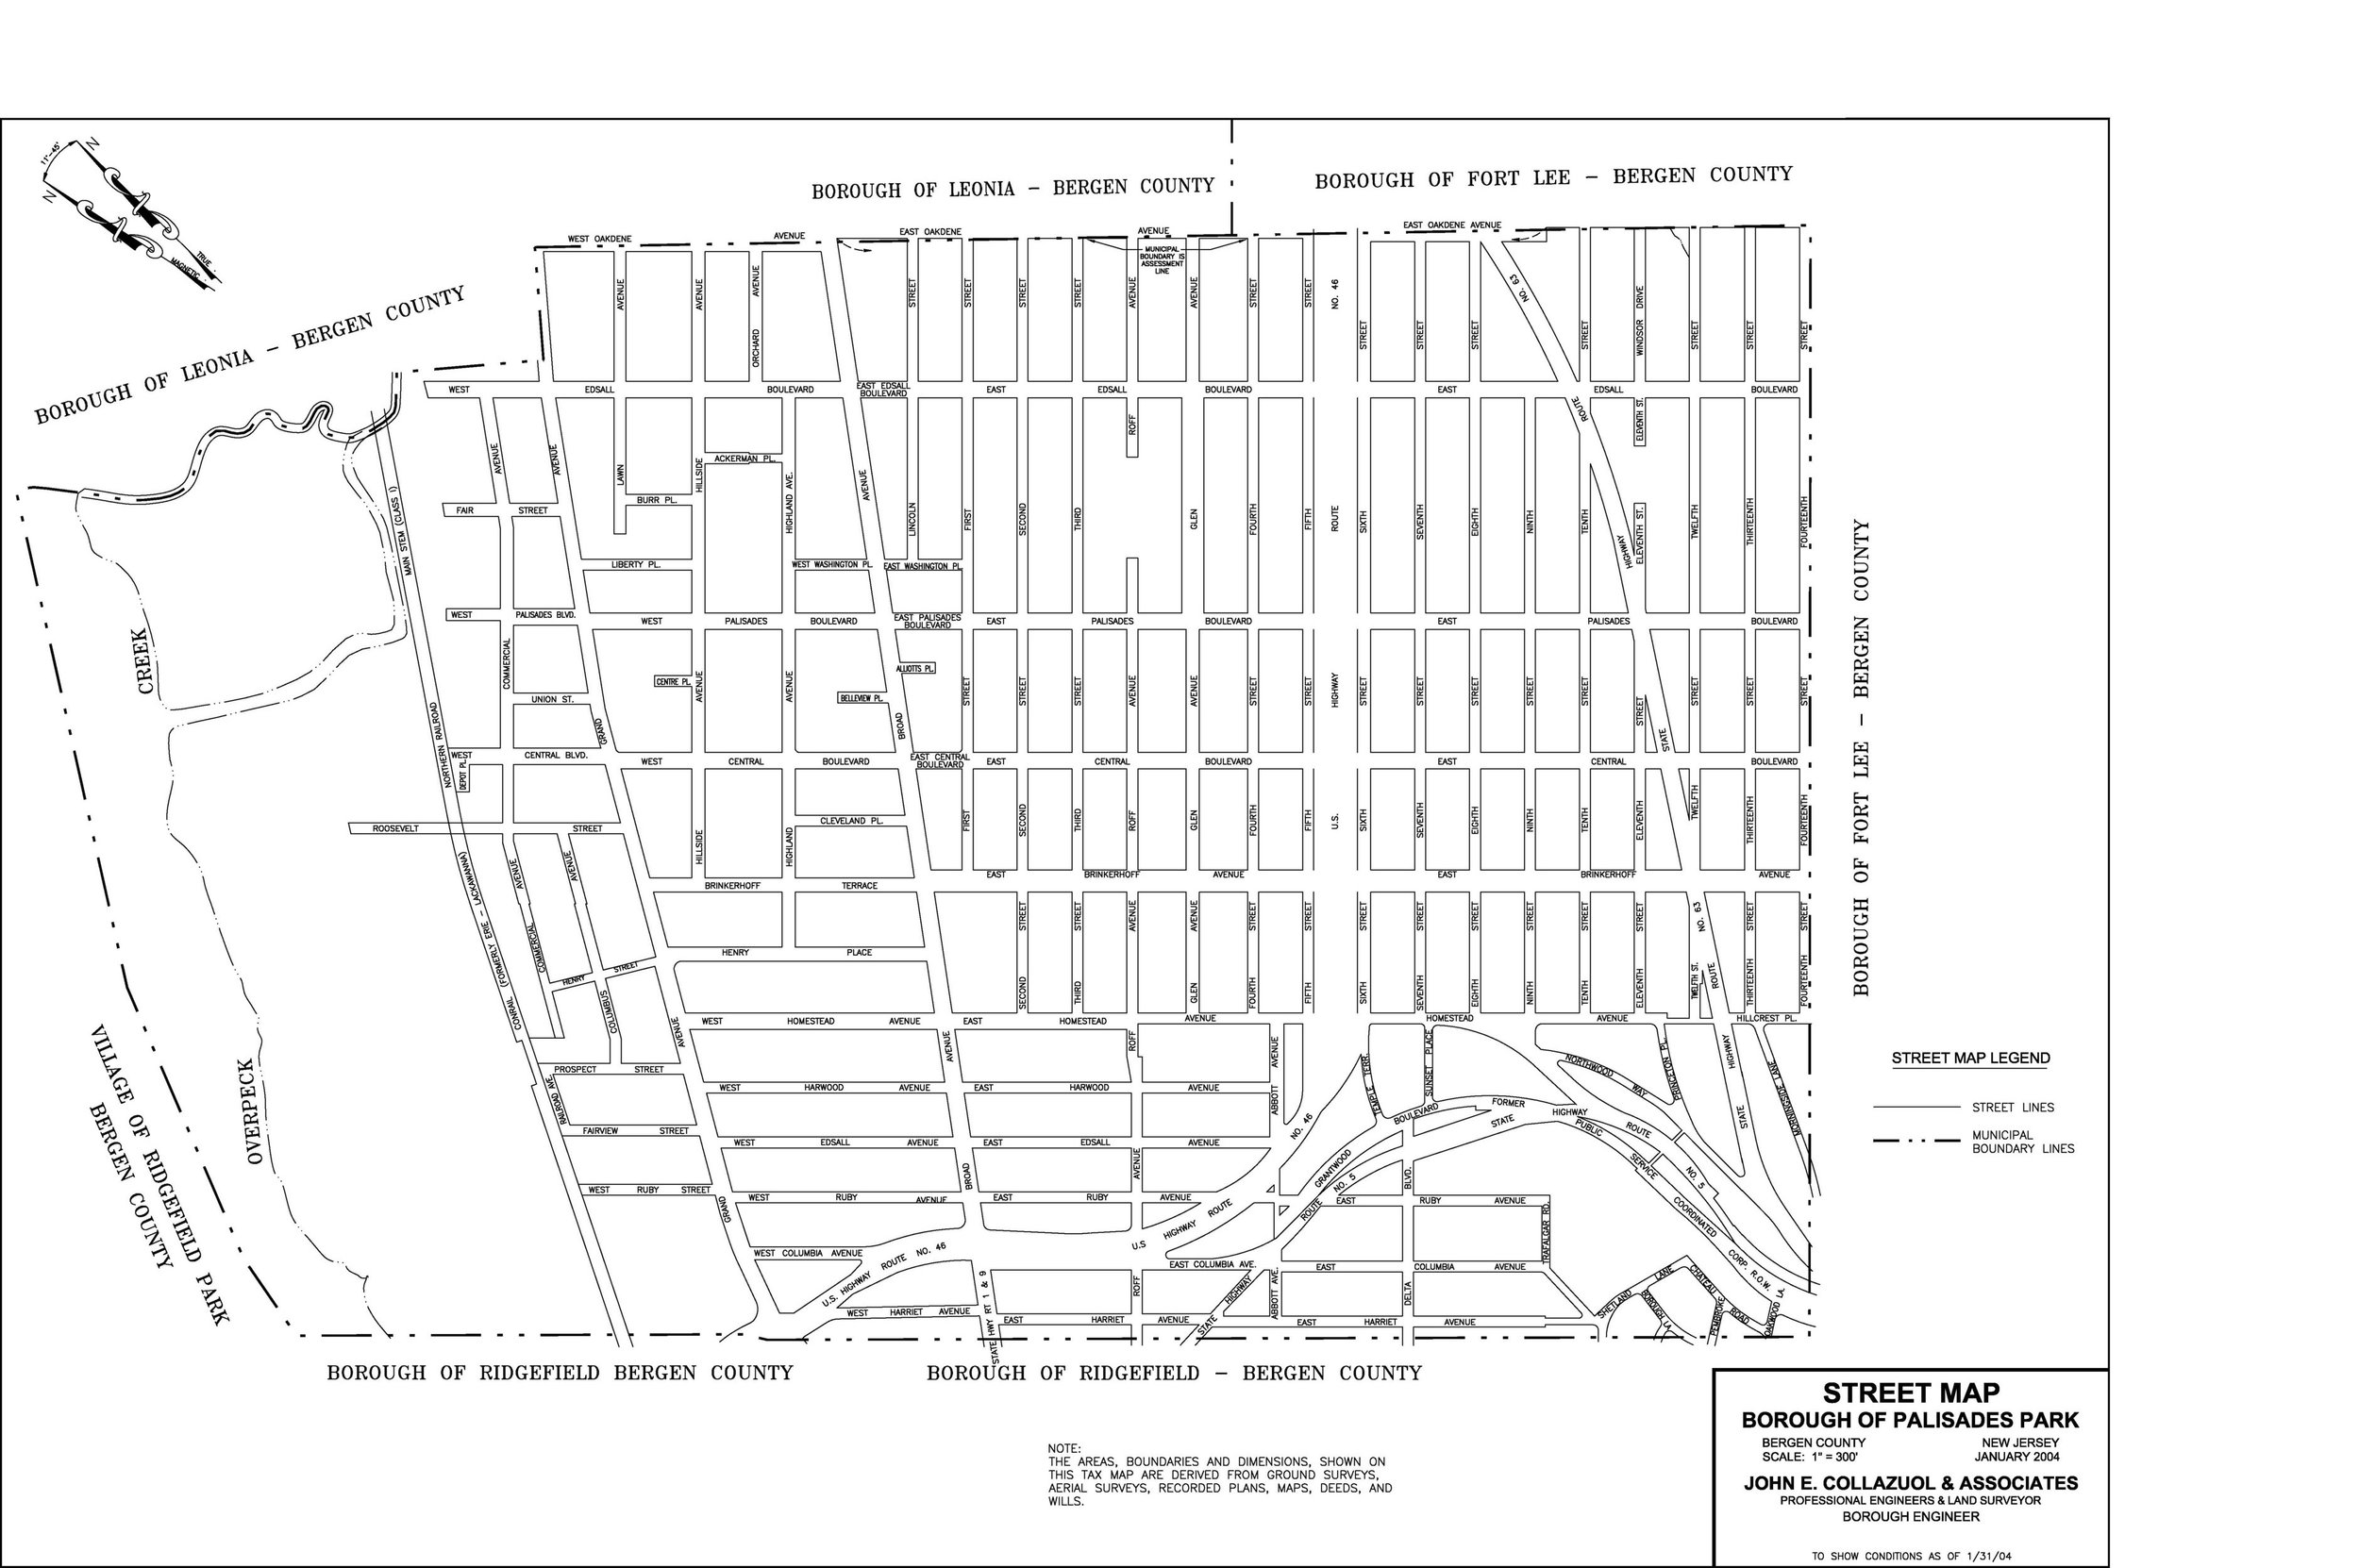 Town Maps — PALISADES PARK Ridgefield Park Street Map on point pleasant beach street map, edgewater street map, seaside heights street map, nutley street map, weehawken street map, sea isle city street map, mahwah street map, perth amboy street map, west deptford street map,